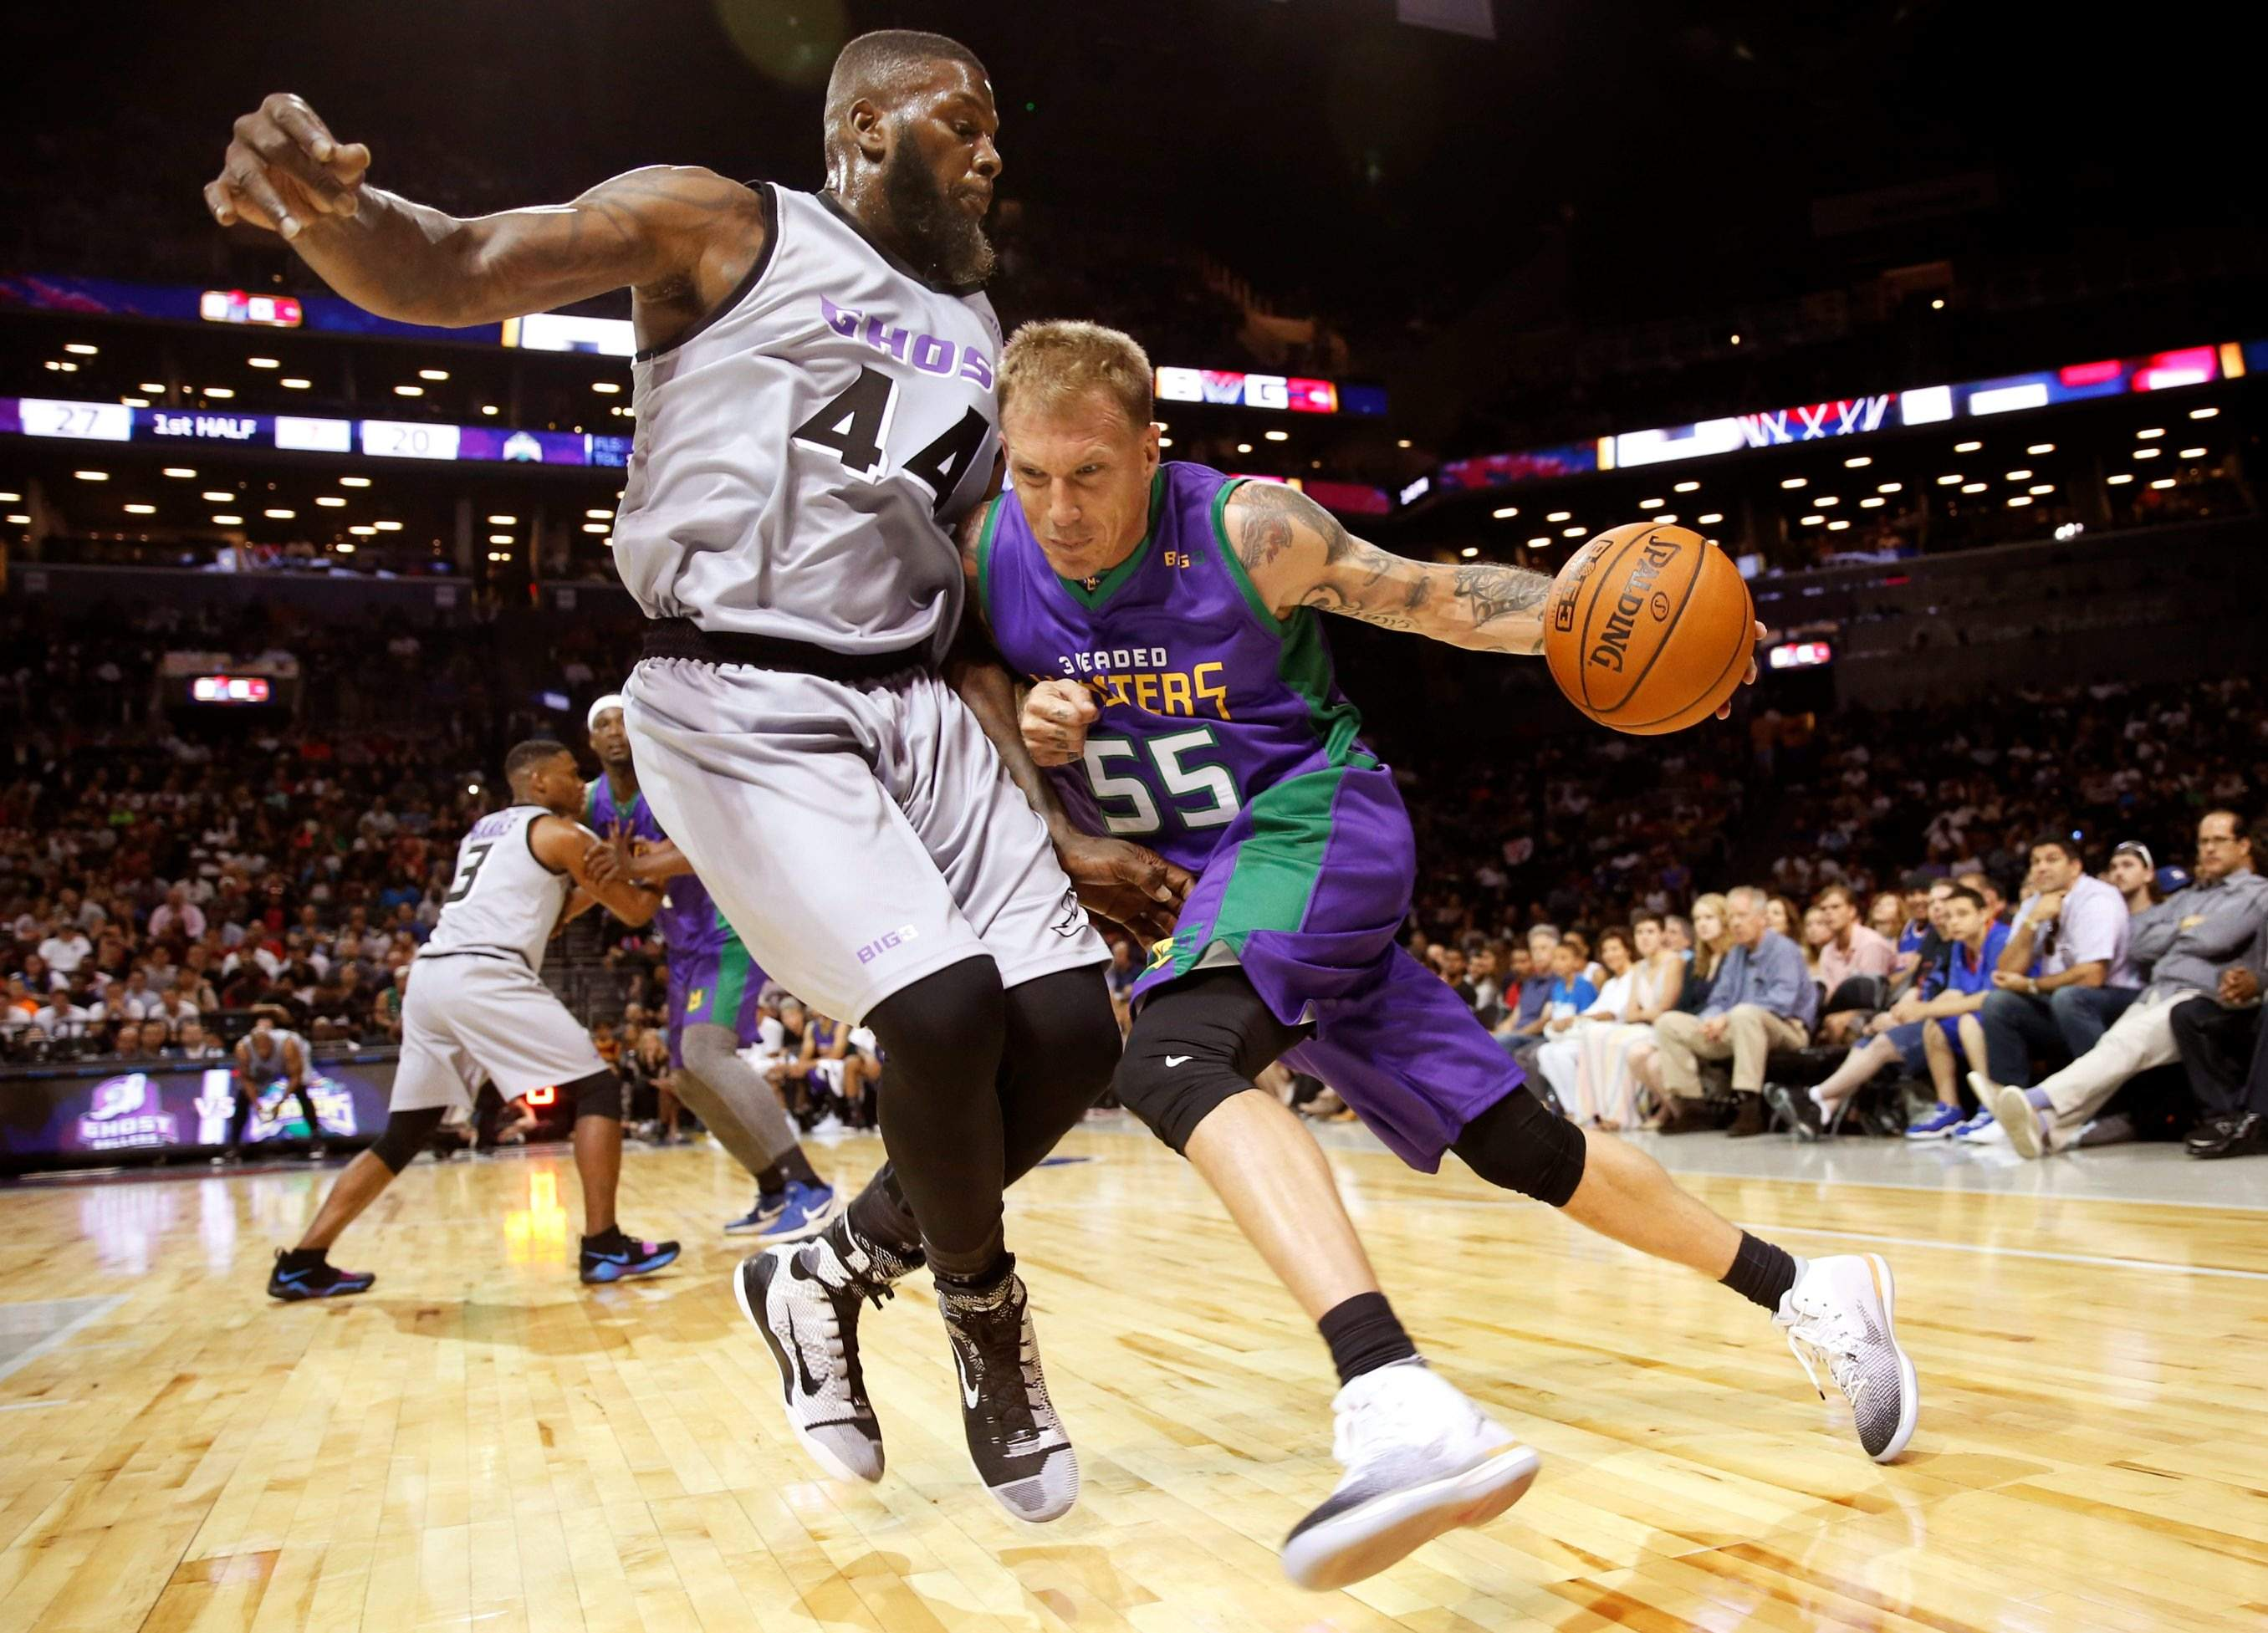 BIG3 Basketball League to Allow its Players to Use CBD